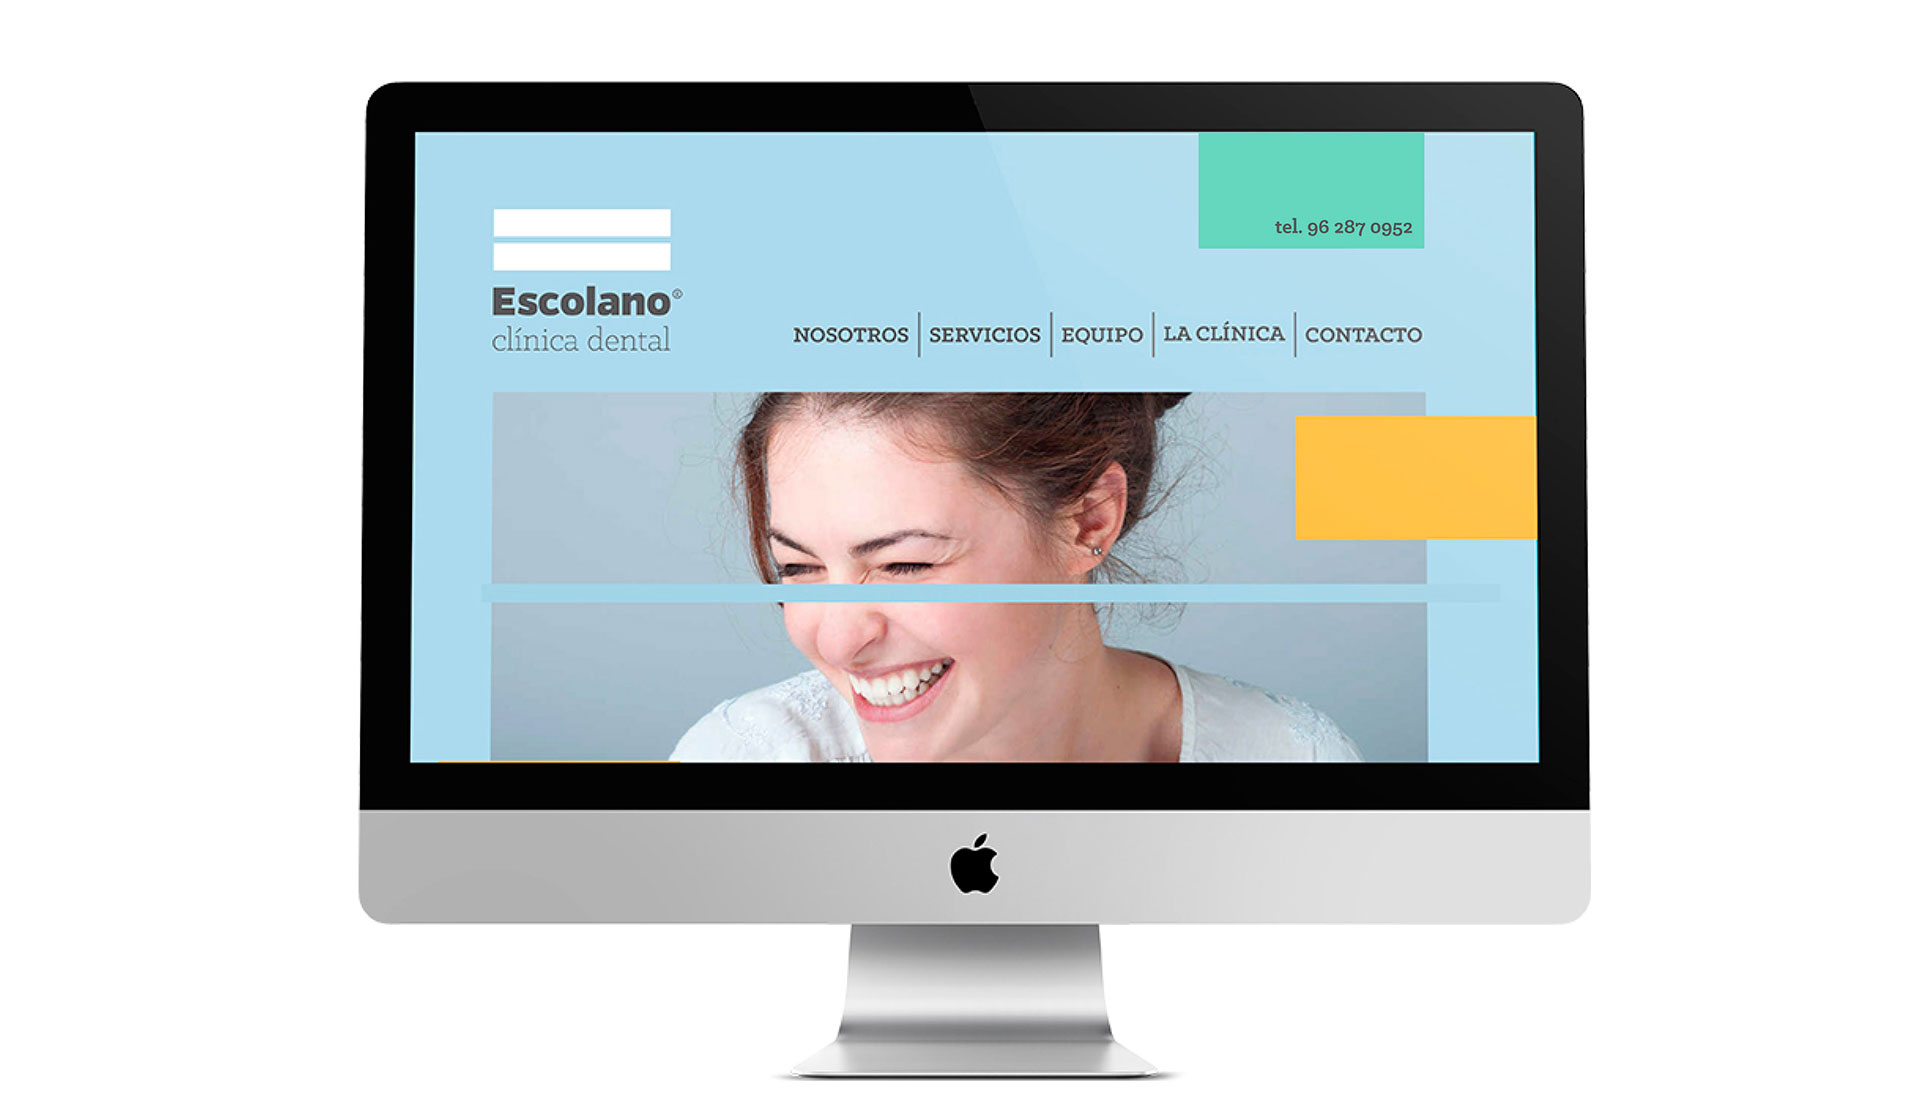 agencia-publicidad-marketing-digital-identidad-corporativa-clinica-dental-gandia-03